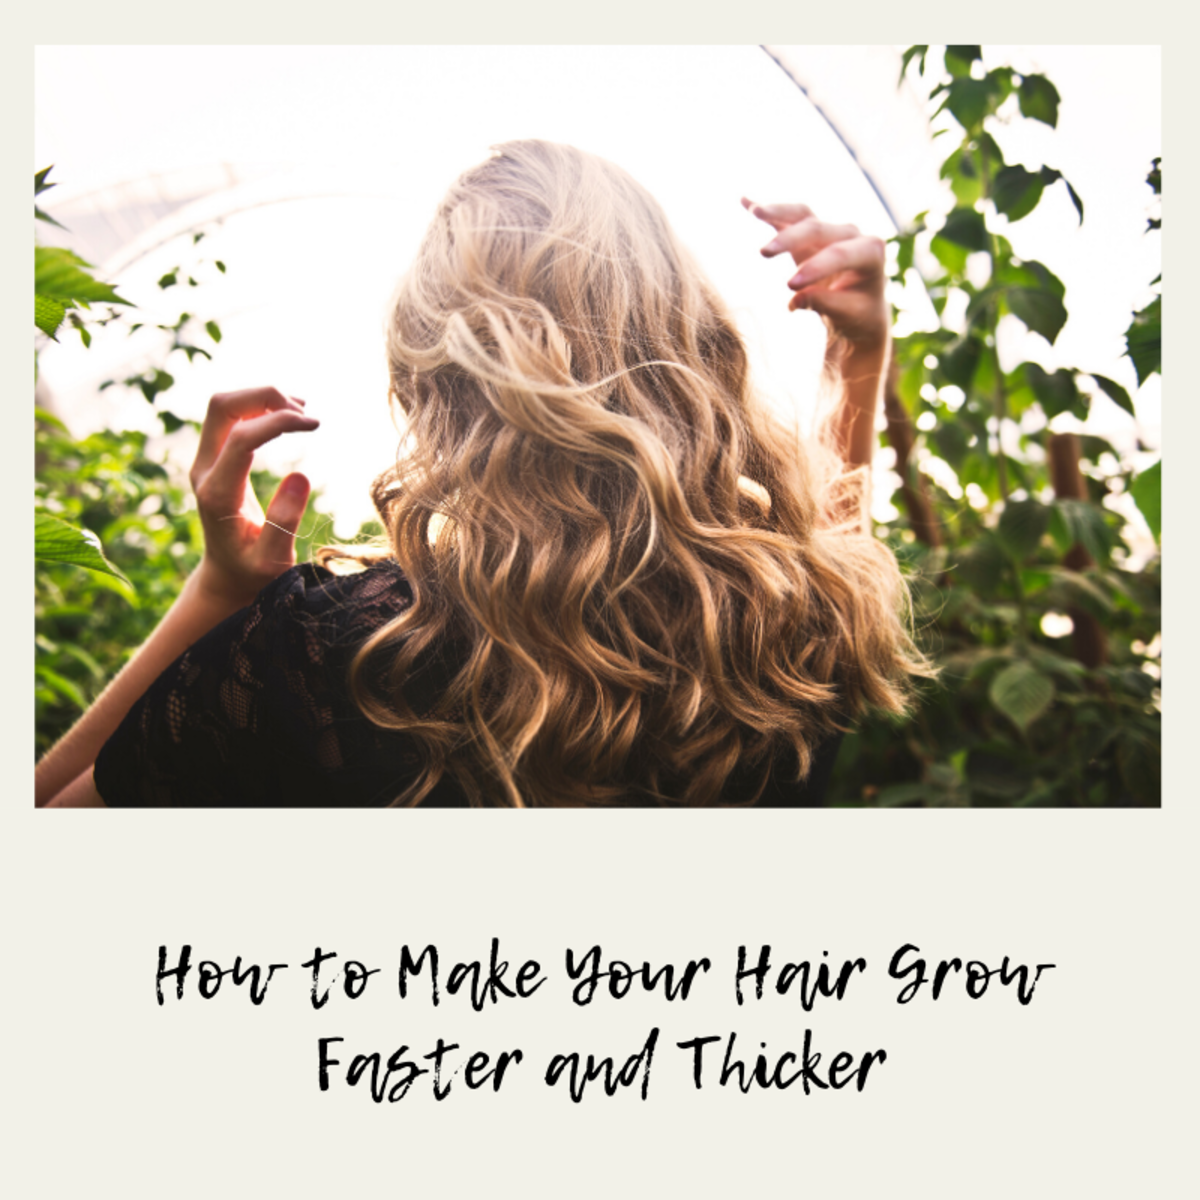 Four Tips to Make Your Hair Grow Faster and Thicker